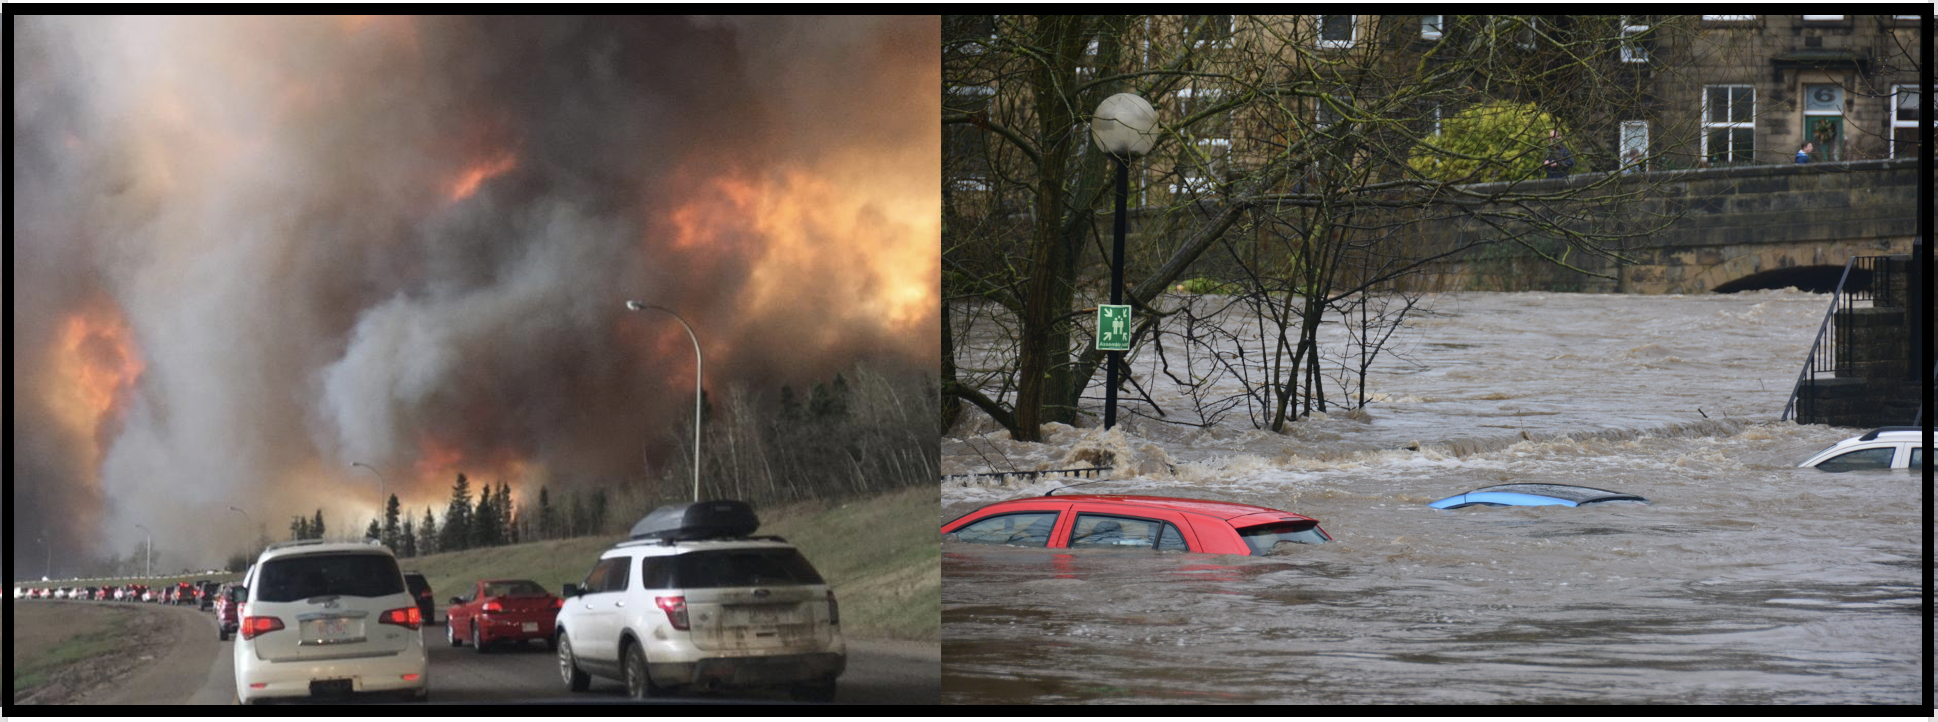 Apply design thinking and improvisation to disaster response